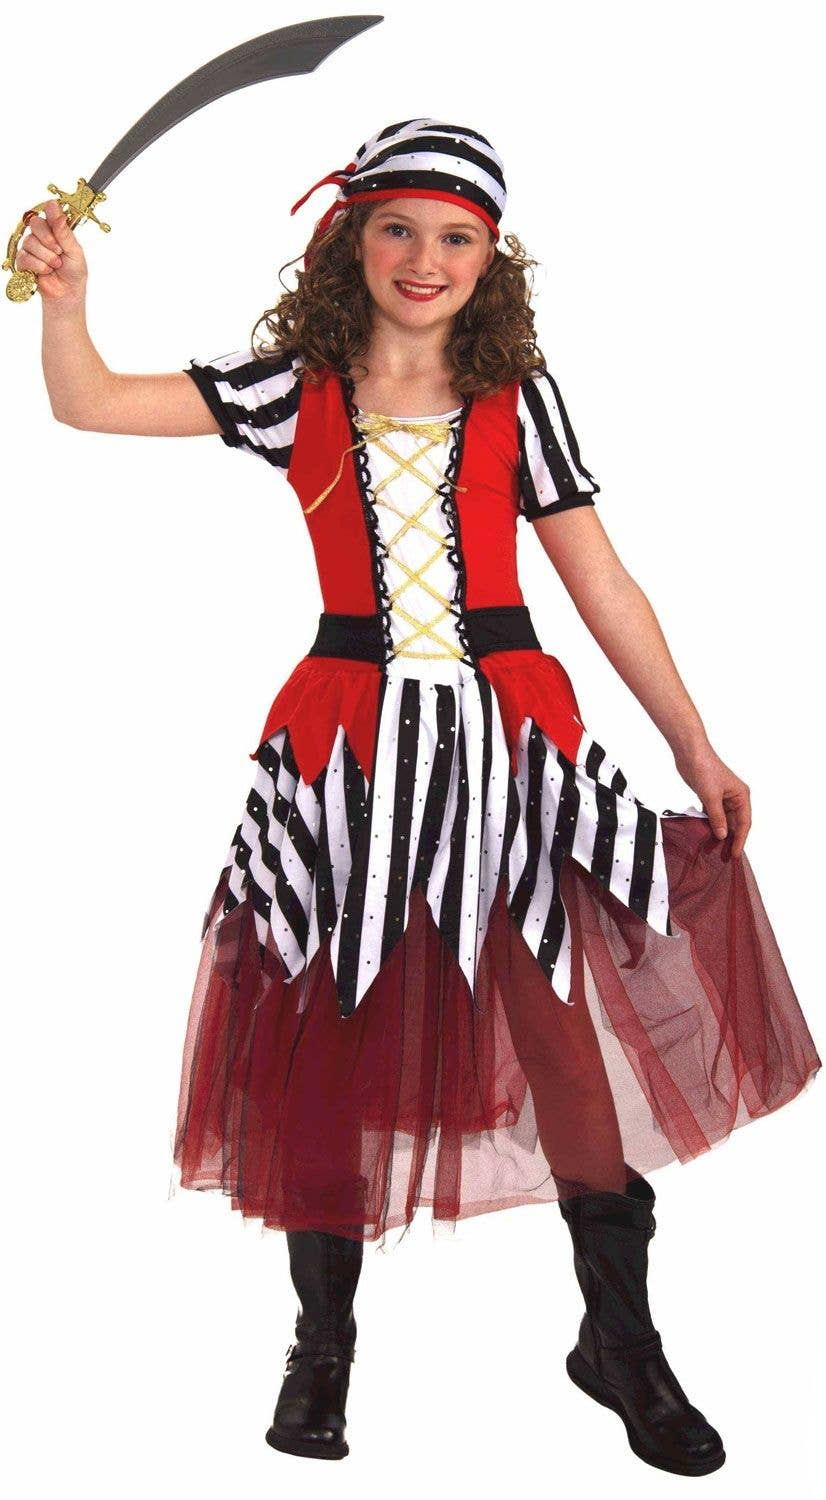 Girls Pirate Buccaneer Costume Kids Fancy Dress Outfit Book Week Party Dressup